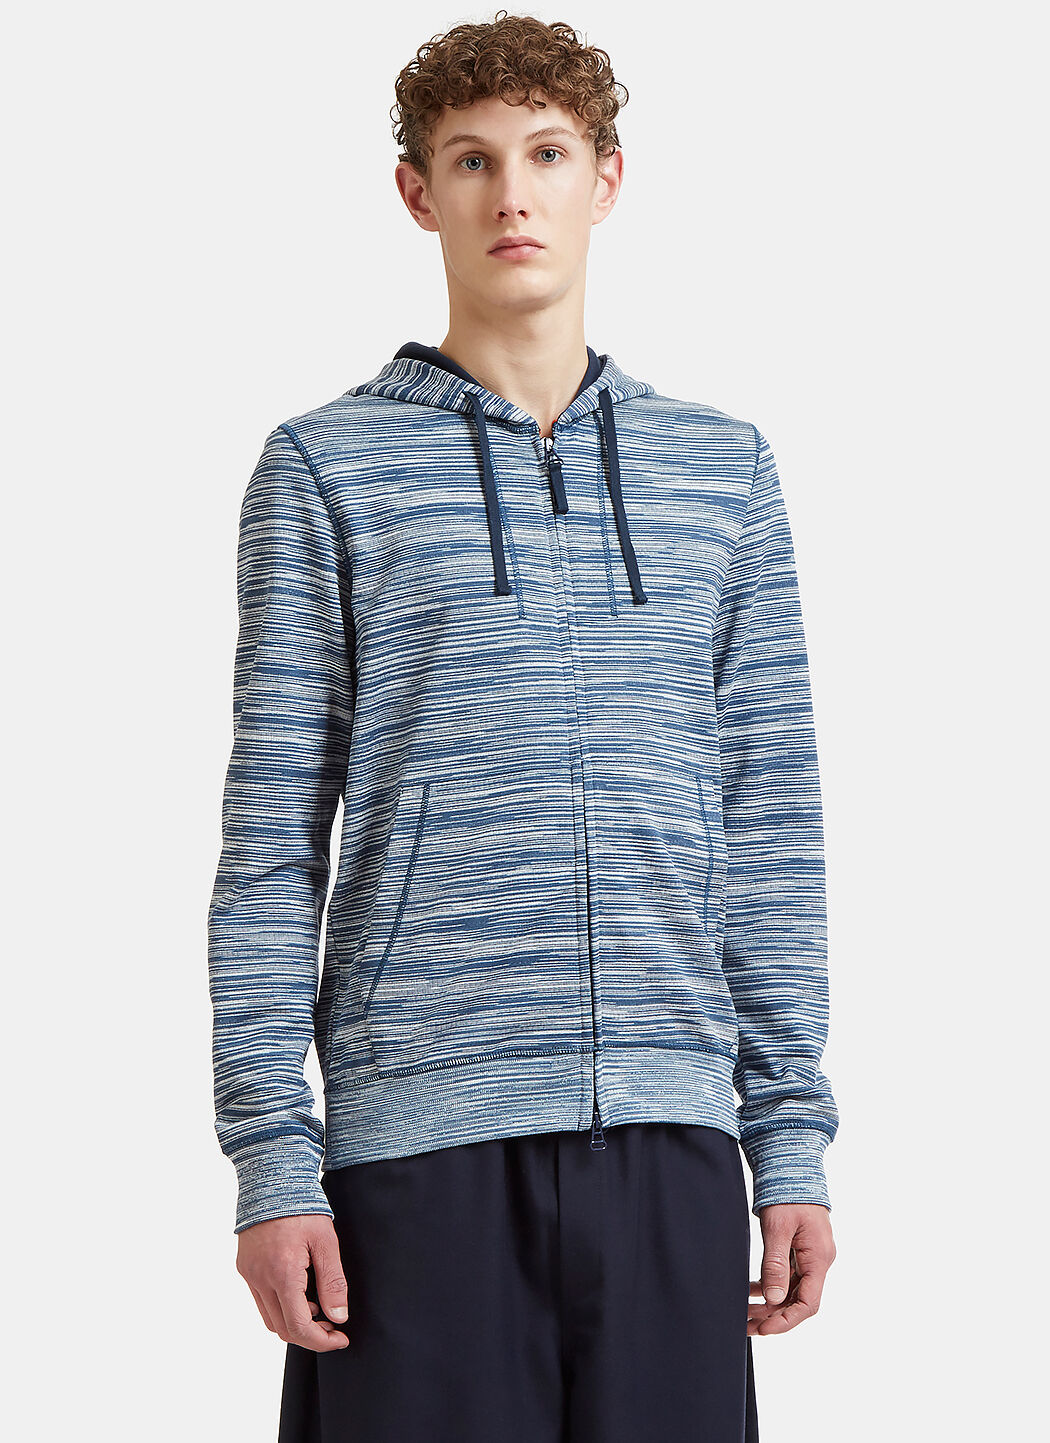 Clearance 2018 Newest Striped Zip-Up Cotton Hooded Sweater Missoni Outlet Store Online Outlet How Much CqOz1f